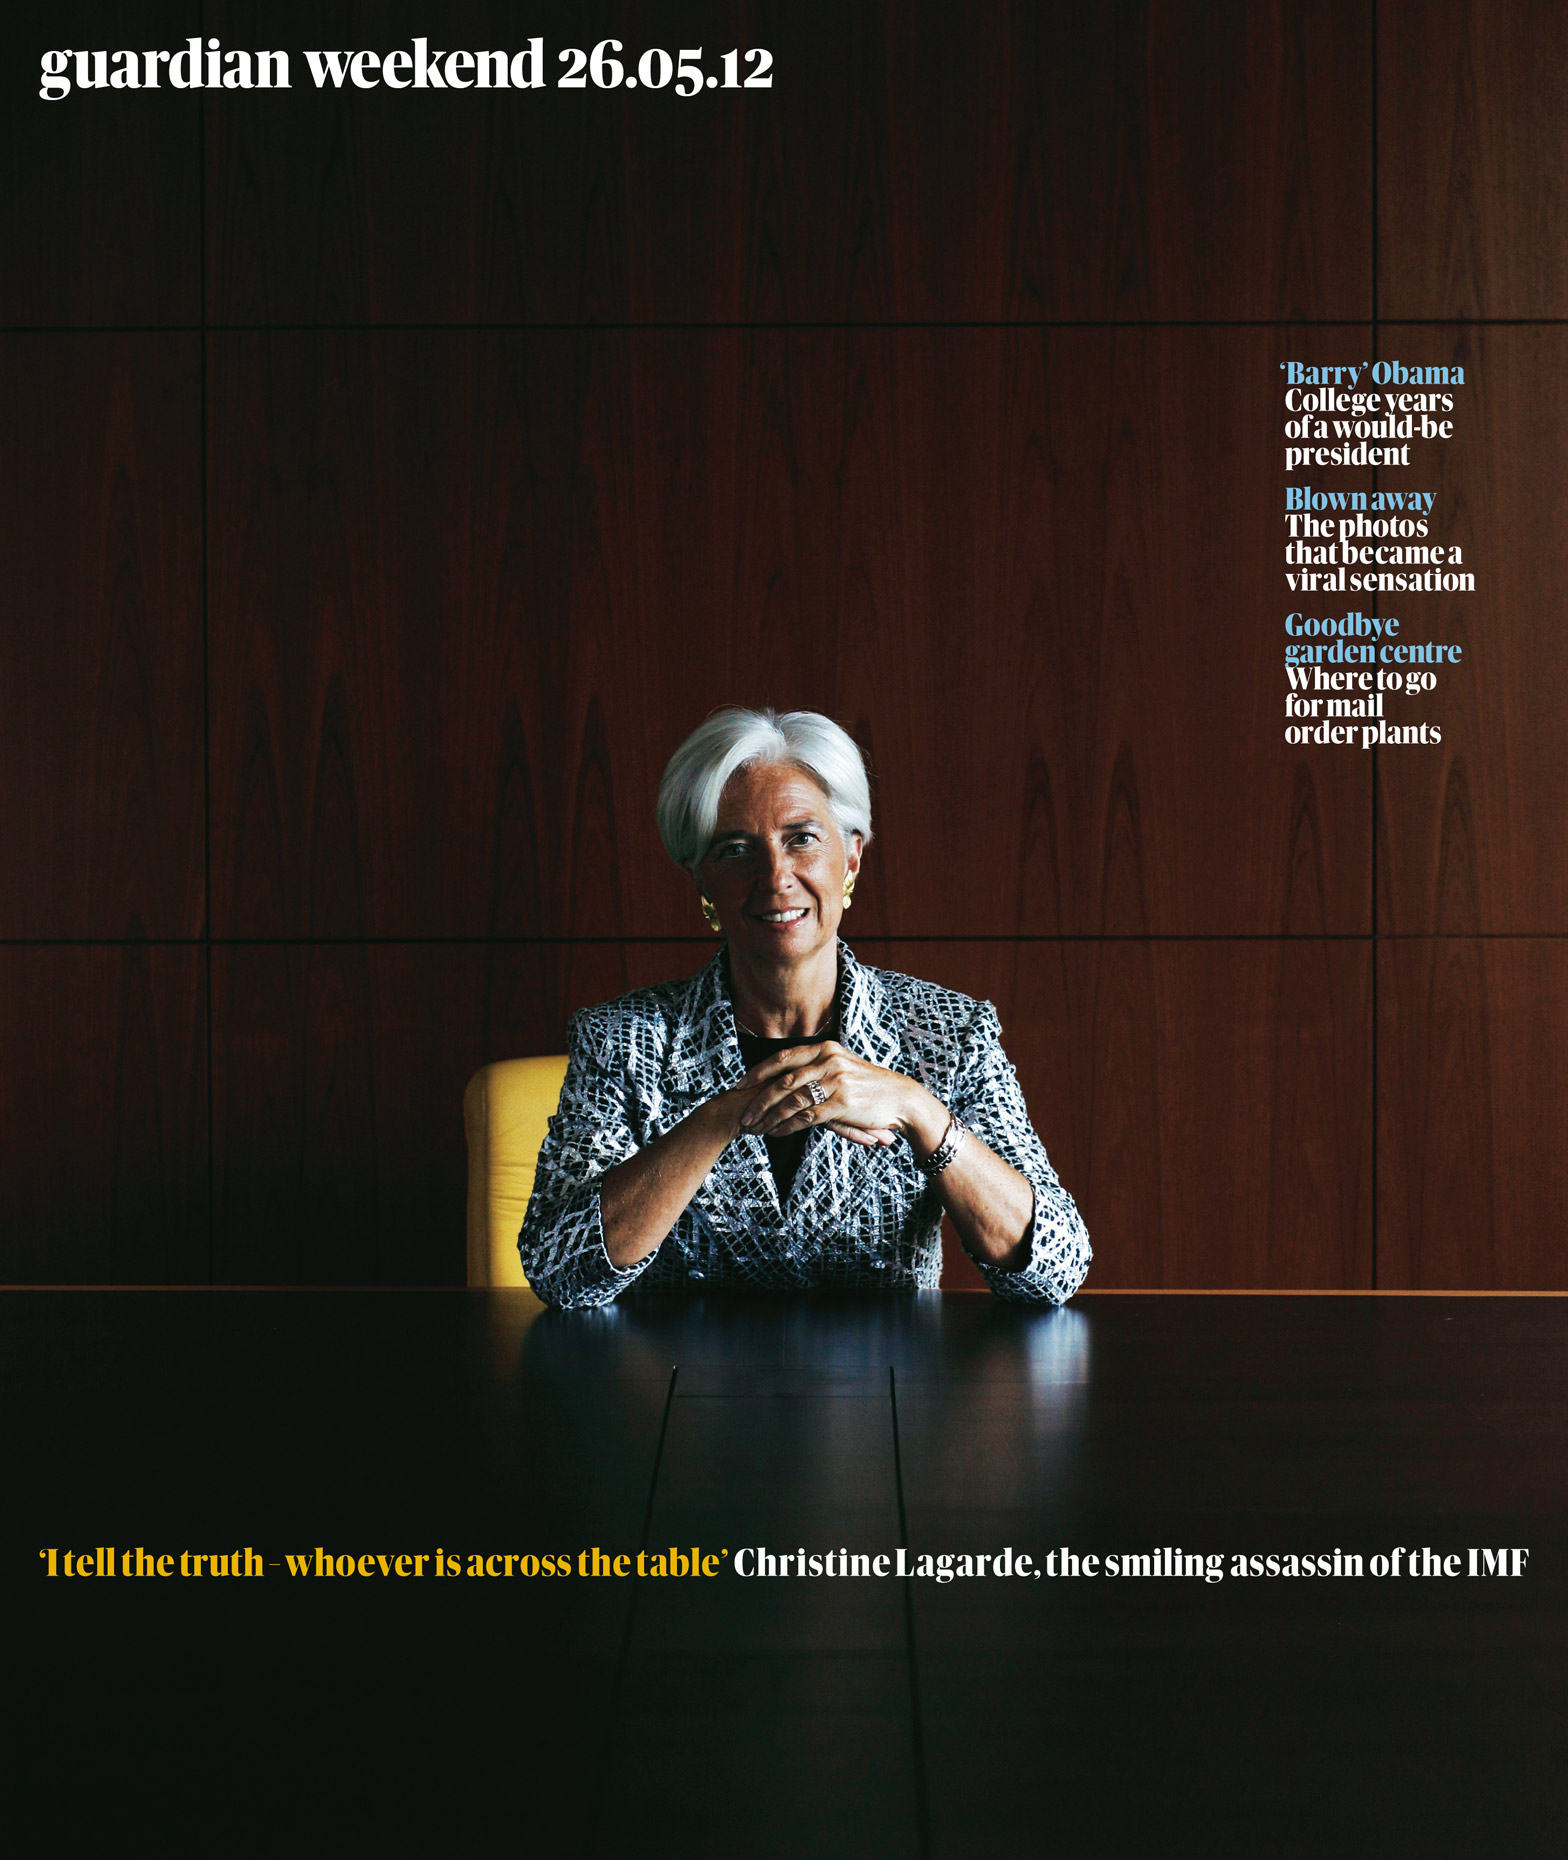 For the Guardian Week End Magazine - Christine Lagarde Managing Director of the International Monetary Fund